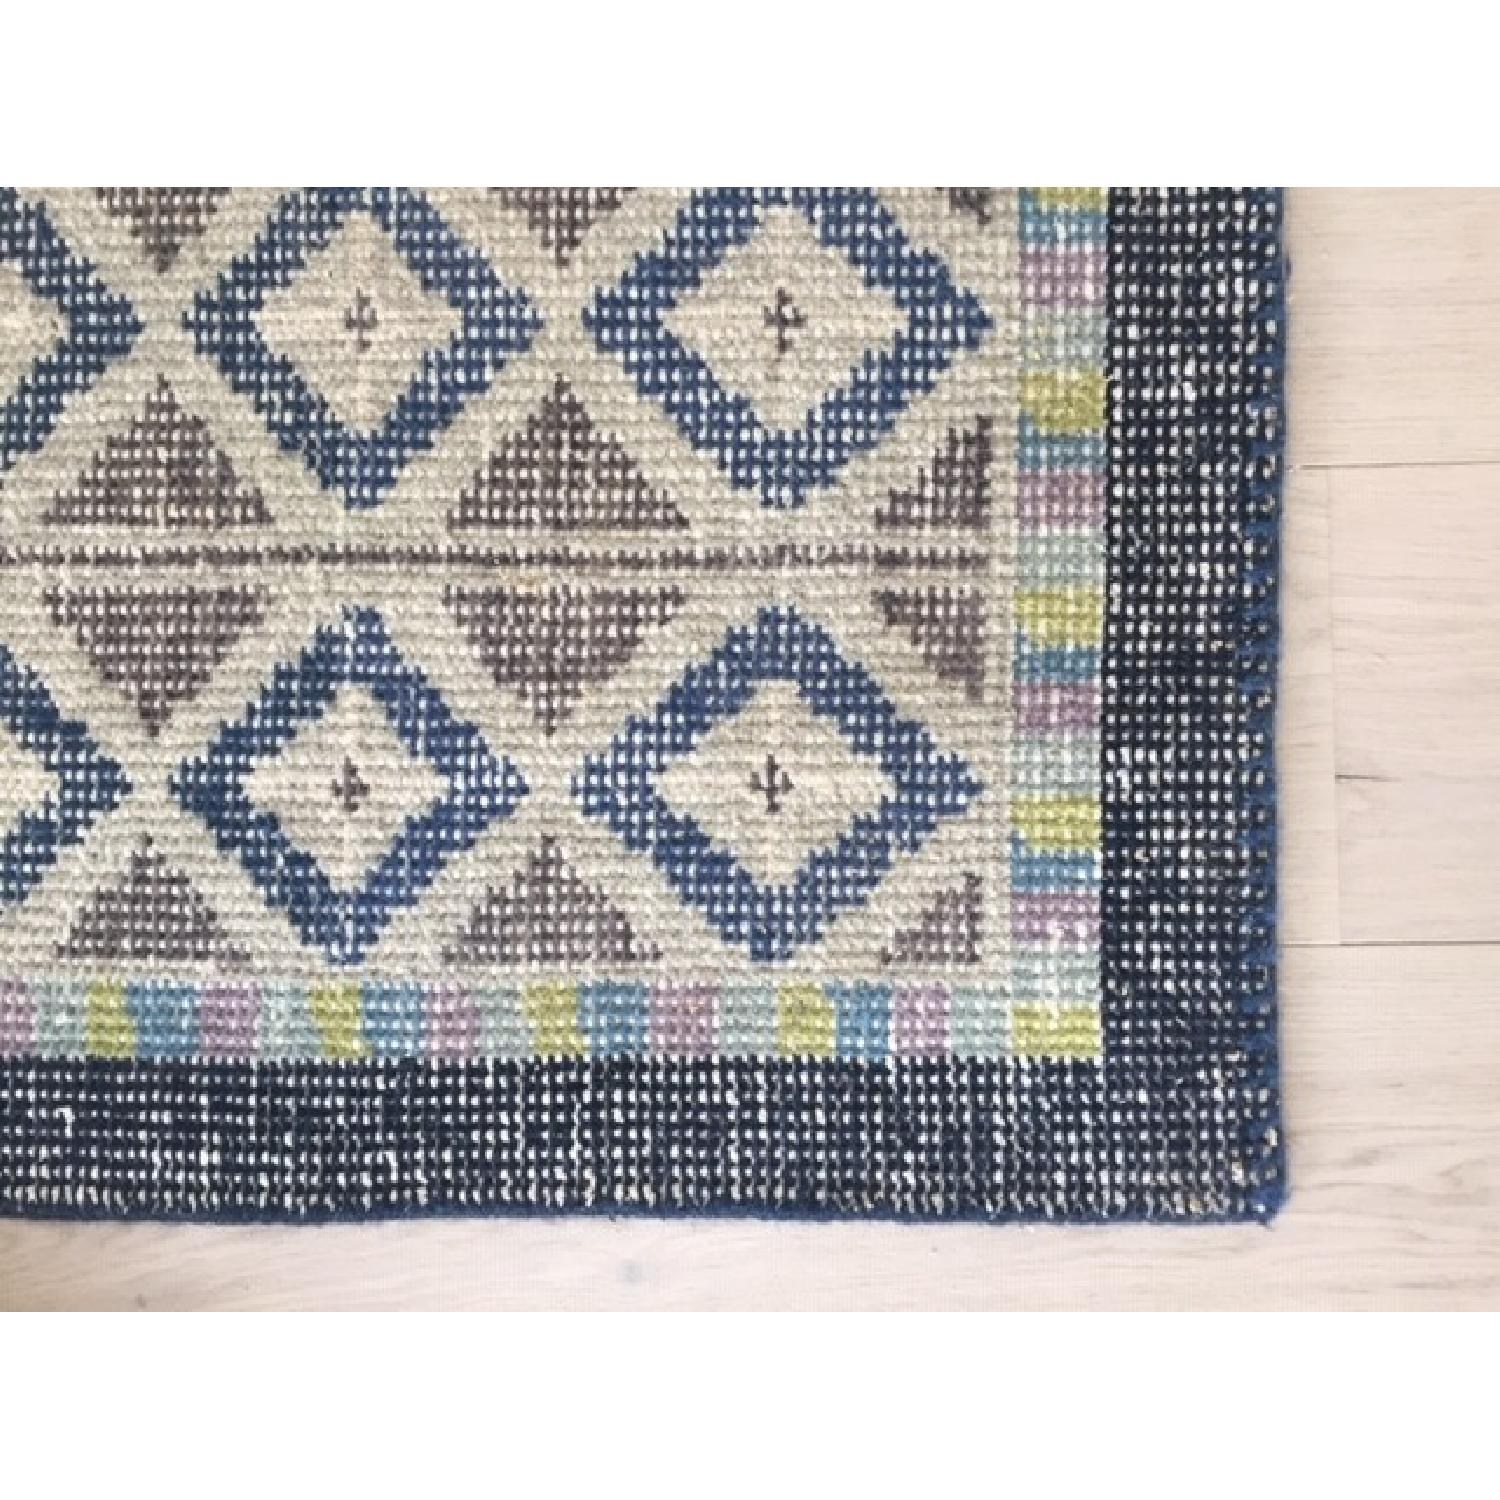 Anthropologie Area Rug - image-2